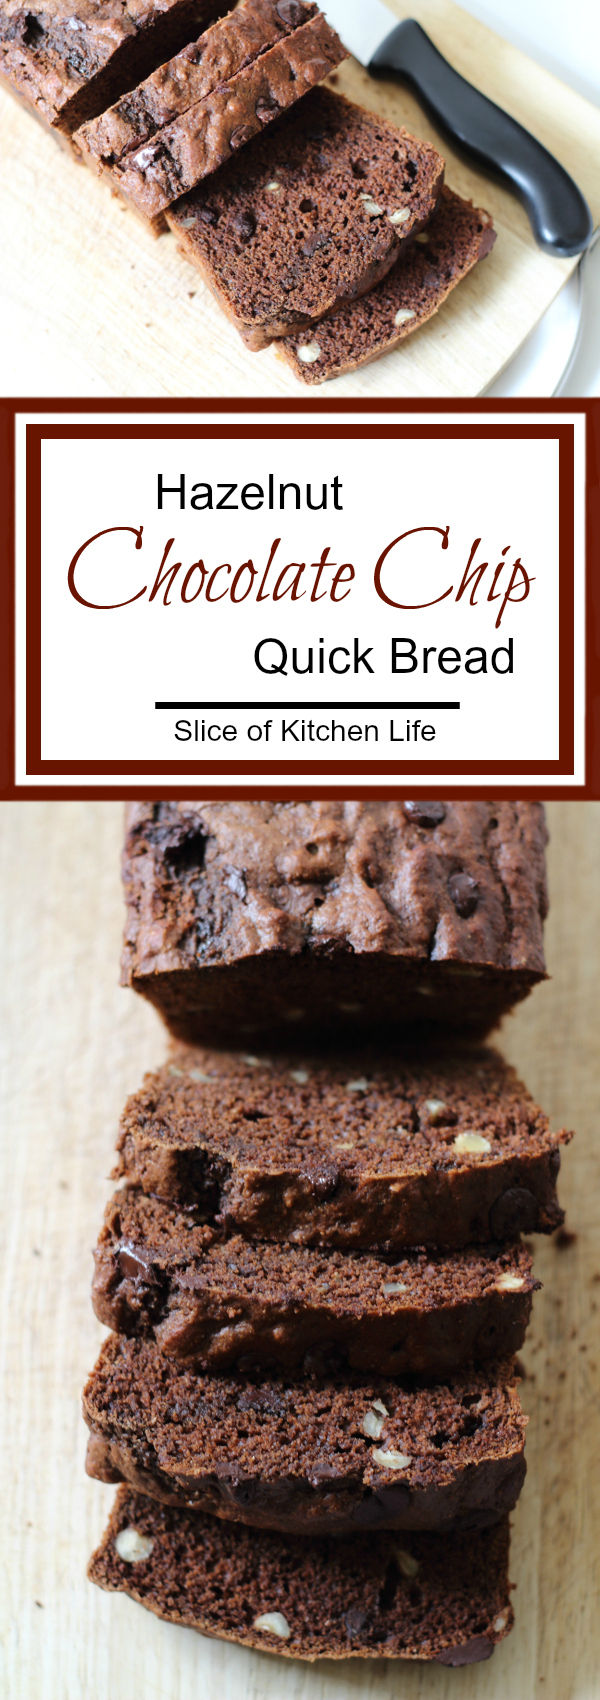 Hazelnut chocolate chip quick bread recipe - try serving warm with ice cream for an indulgent treat. | sliceofkitchenlife.com